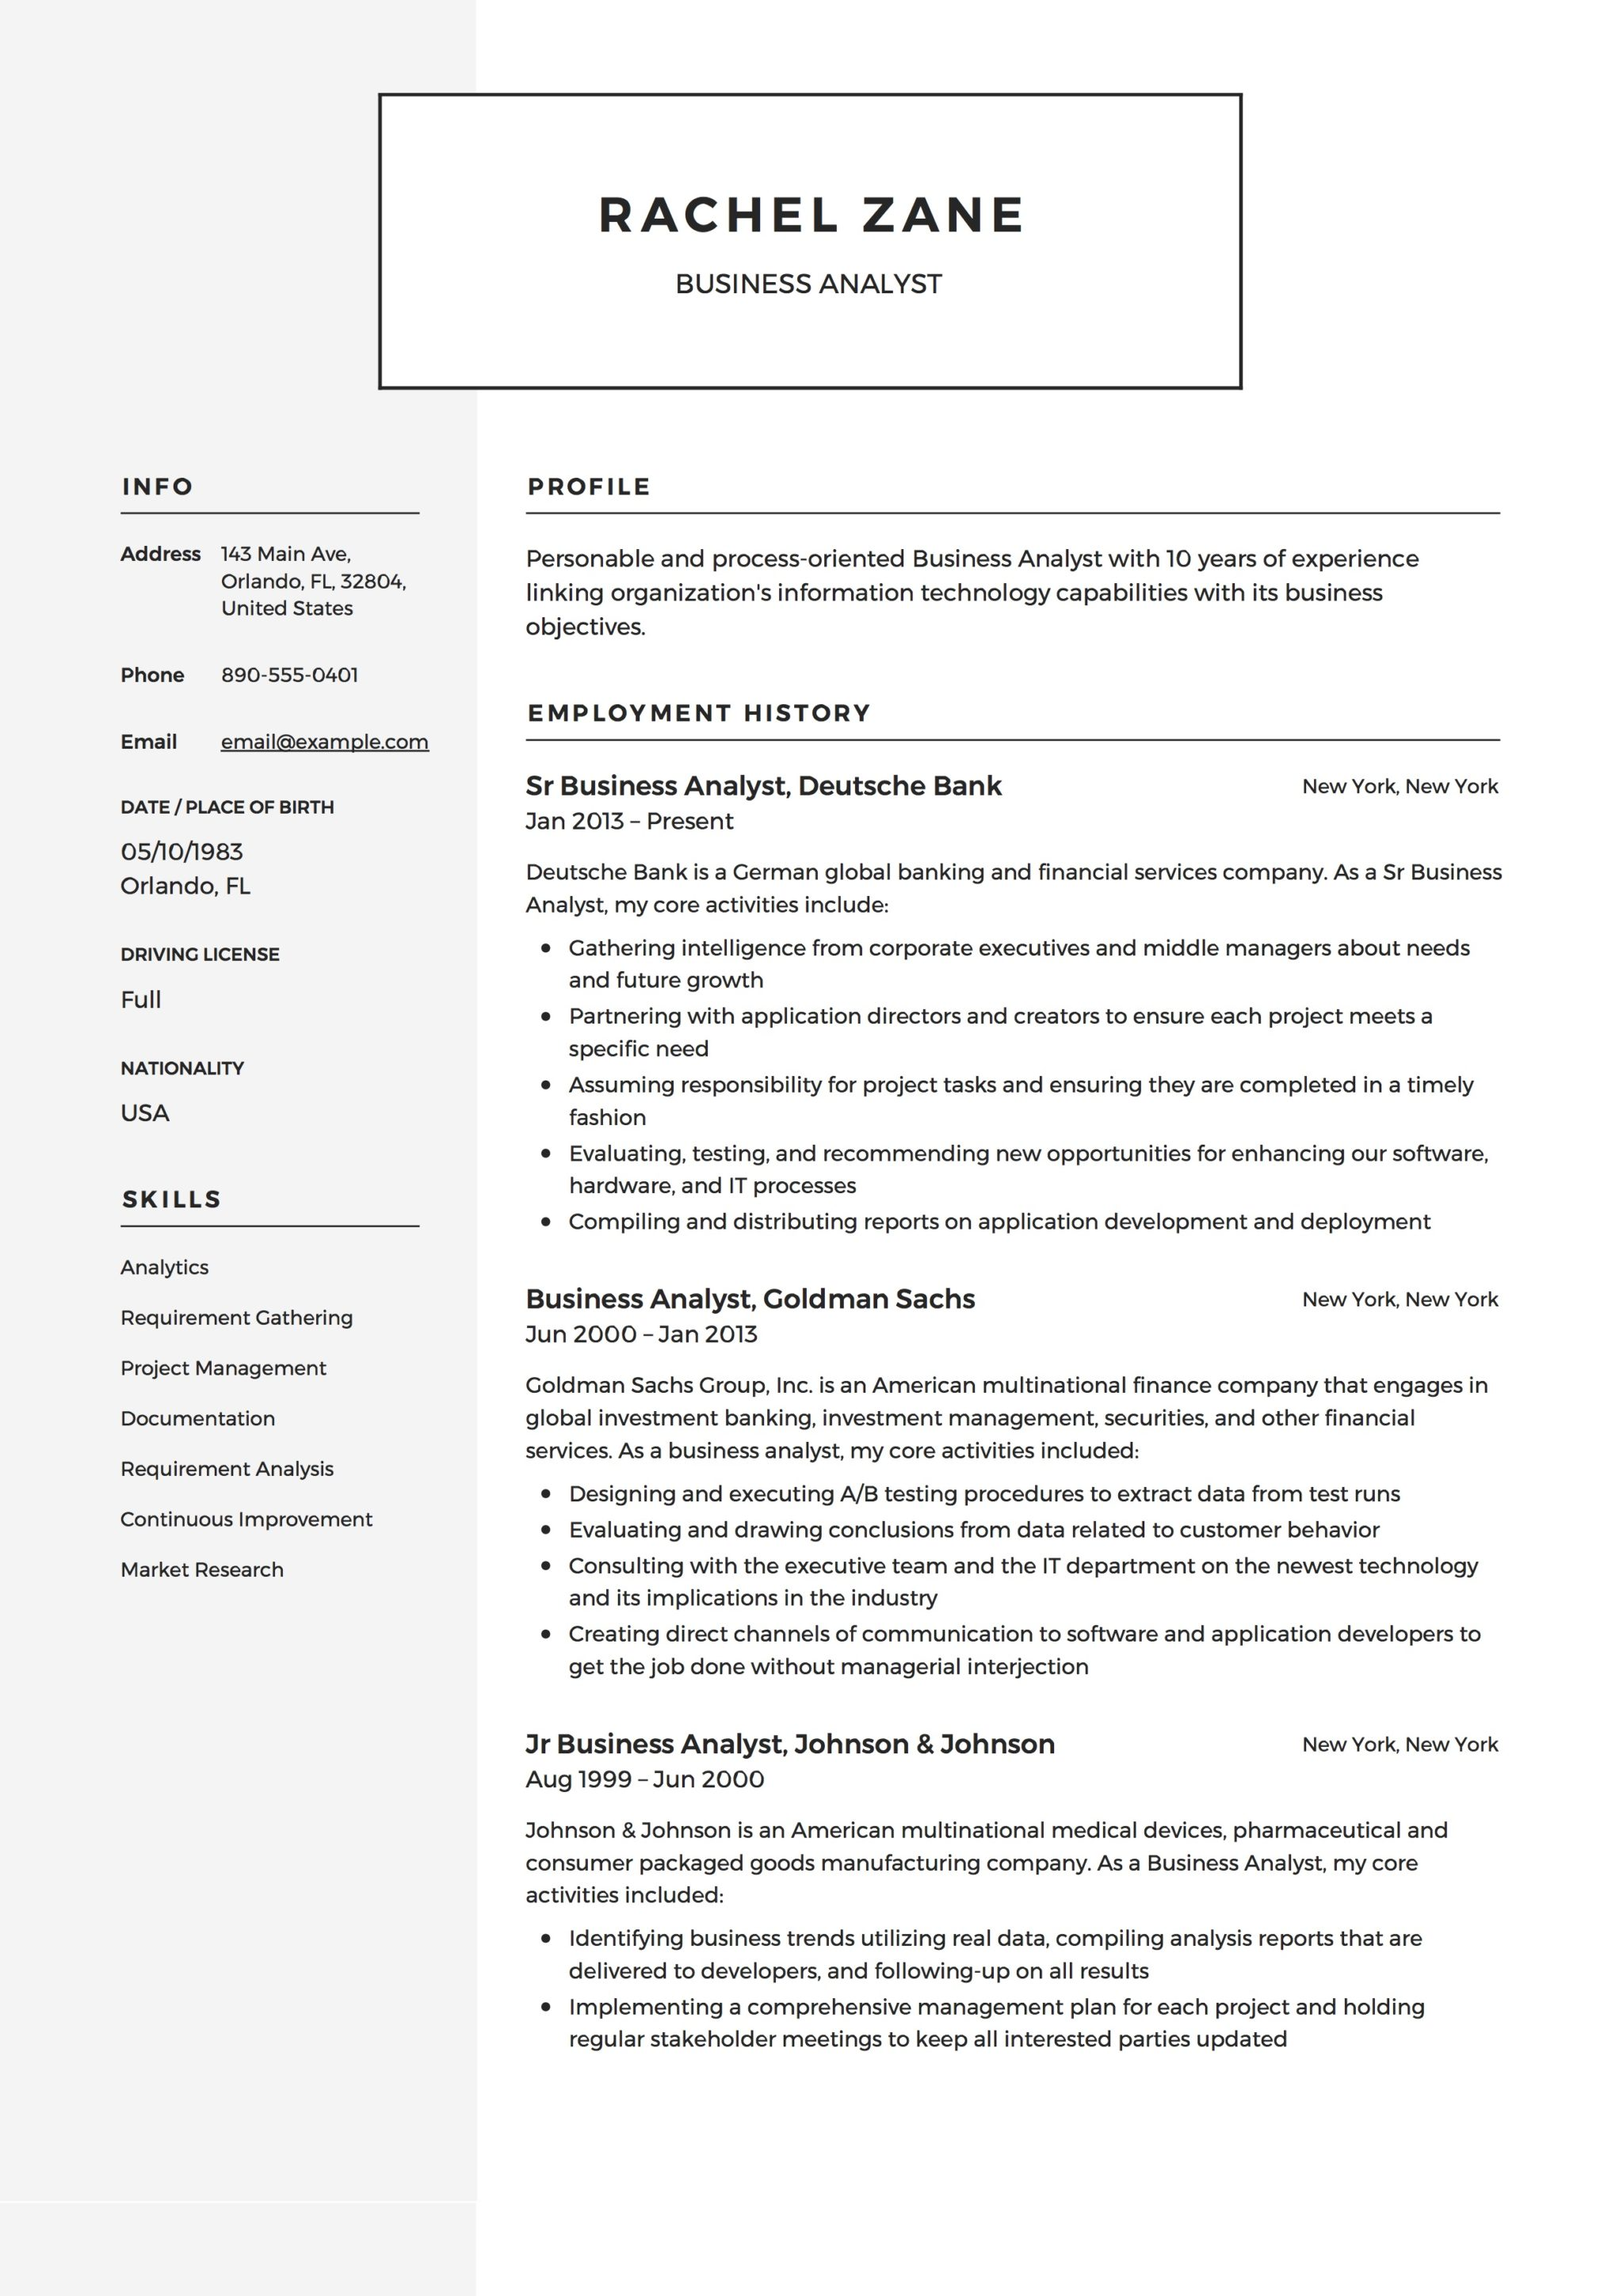 Functional Business Analyst Resume Resume Template Business Analyst Resumeviking